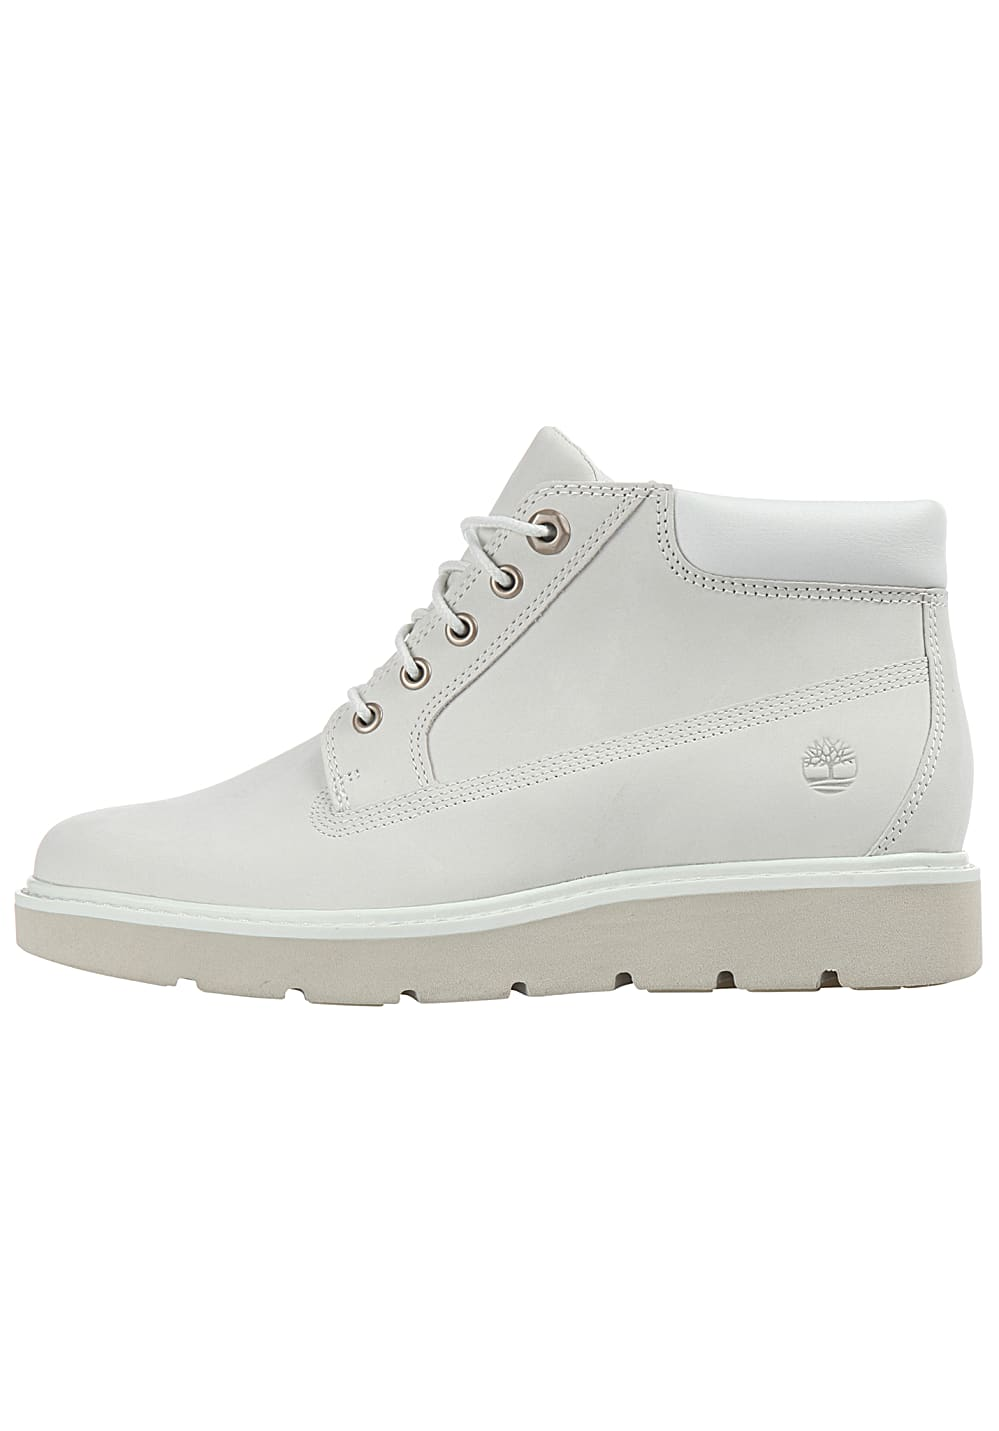 new release various styles buy good TIMBERLAND Kenniston Nellie - Boots for Women - Grey